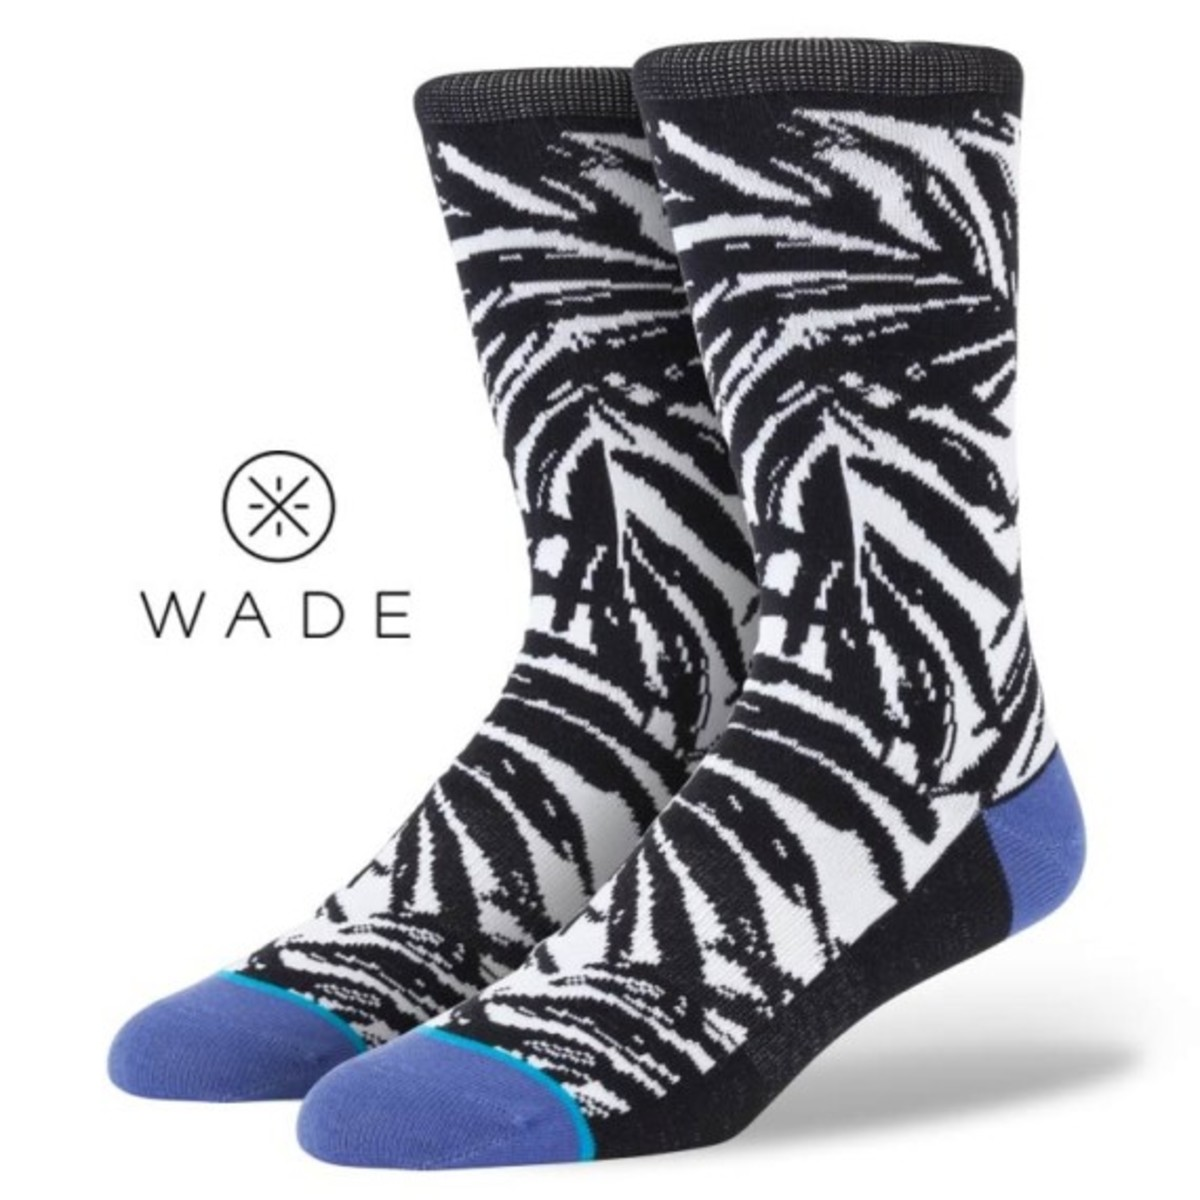 Dwyane Wade x Stance Socks – Summer 2014 Collection - 3